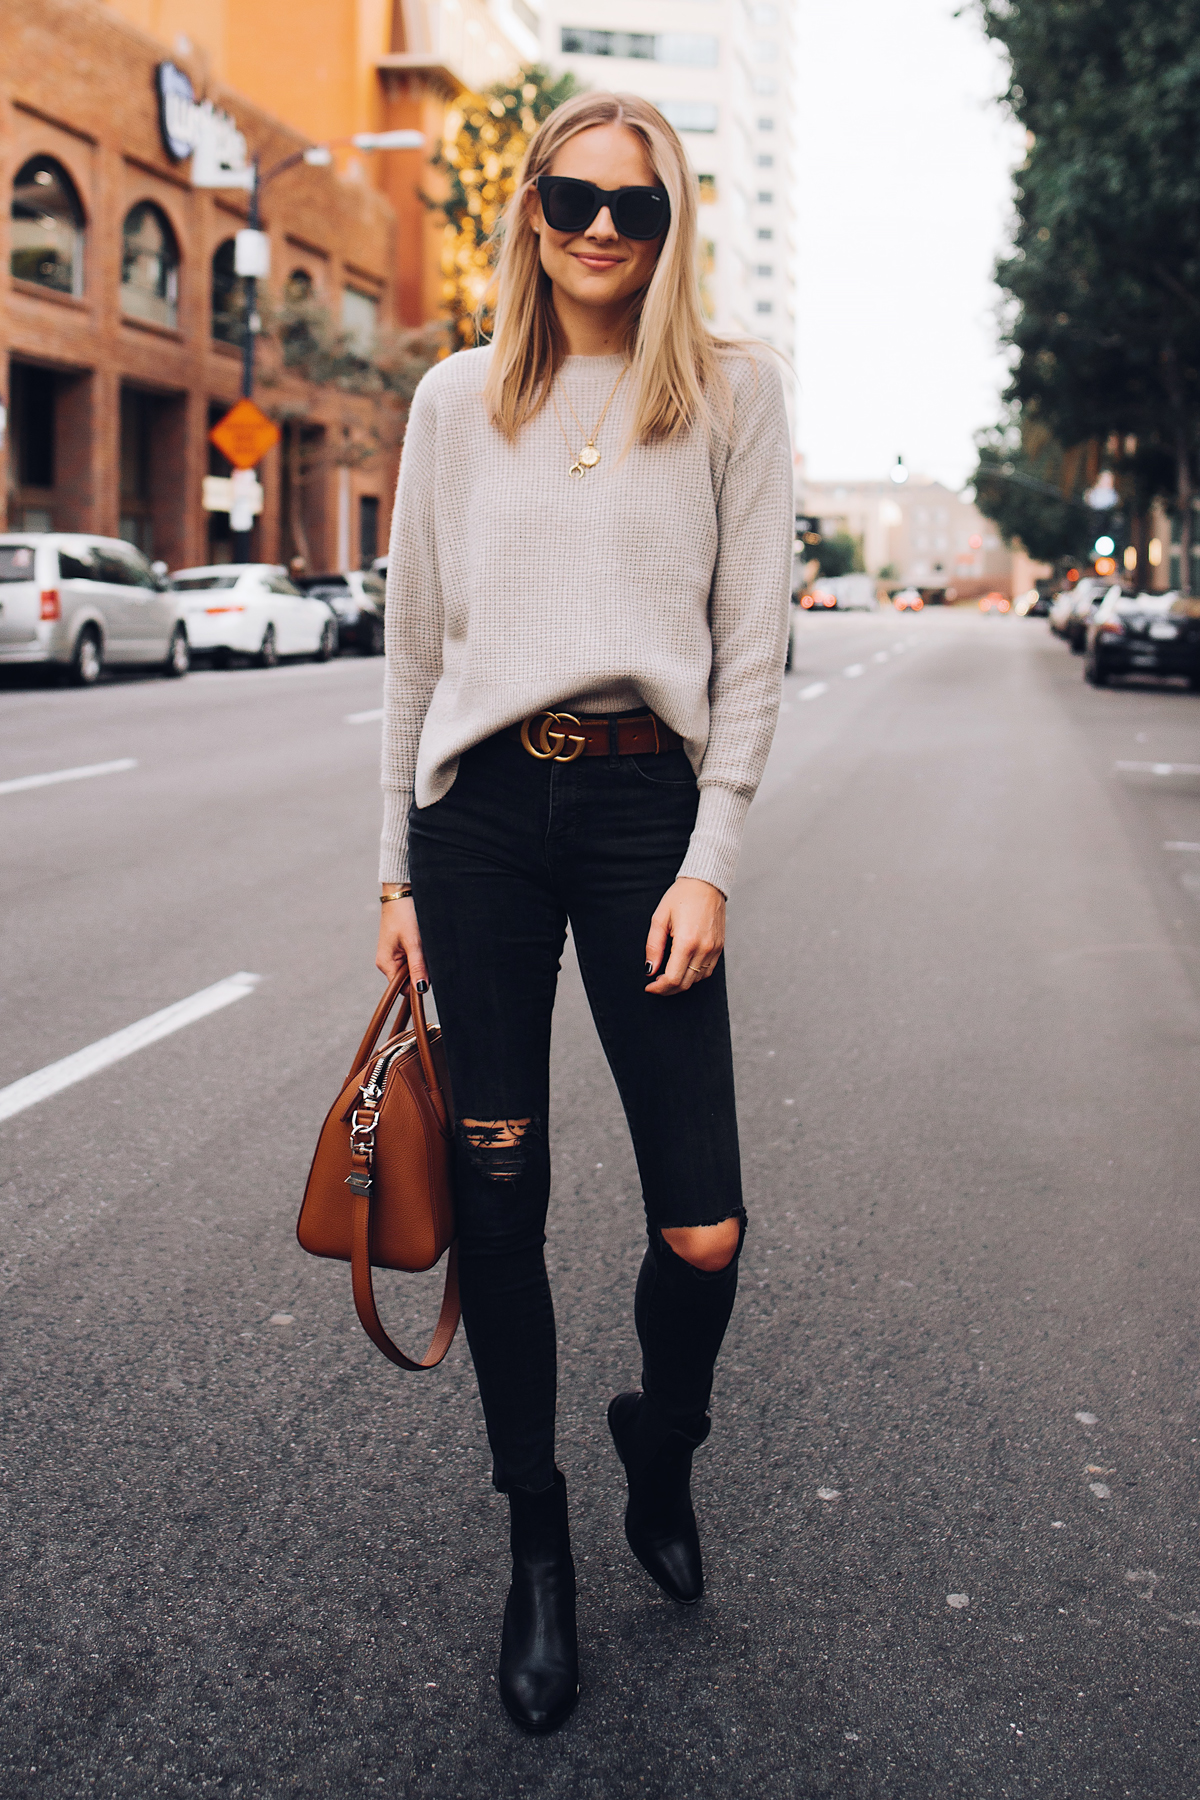 Blonde Woman Wearing Everlane Taupe Cashmere Sweater Black Ripped Skinny Jeans Brown Gucci Logo Belt Black Booties Tan Handbag Fashion Jackson San Diego Fashion Blogger Street Style